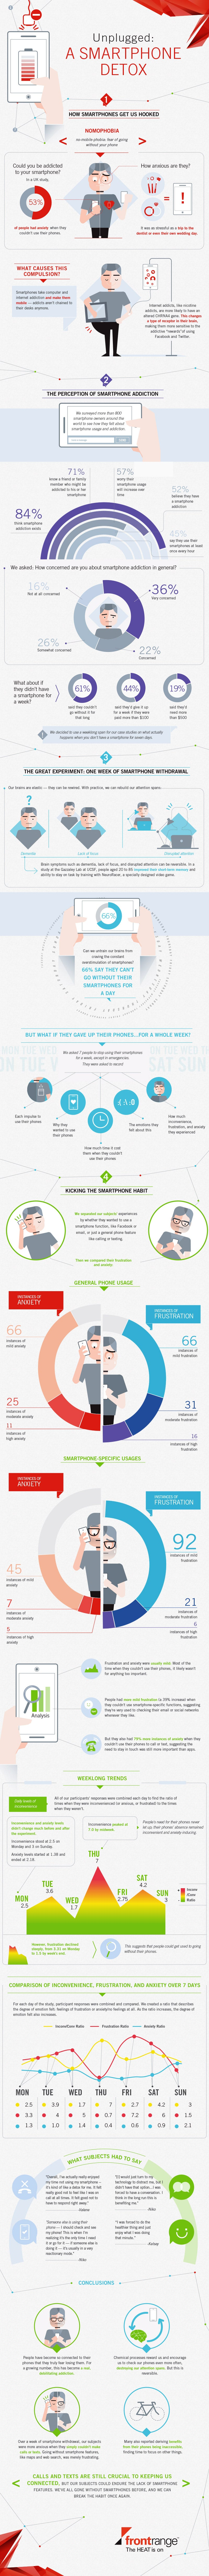 The Guide to Surviving Without Your Smartphone (Infographic)